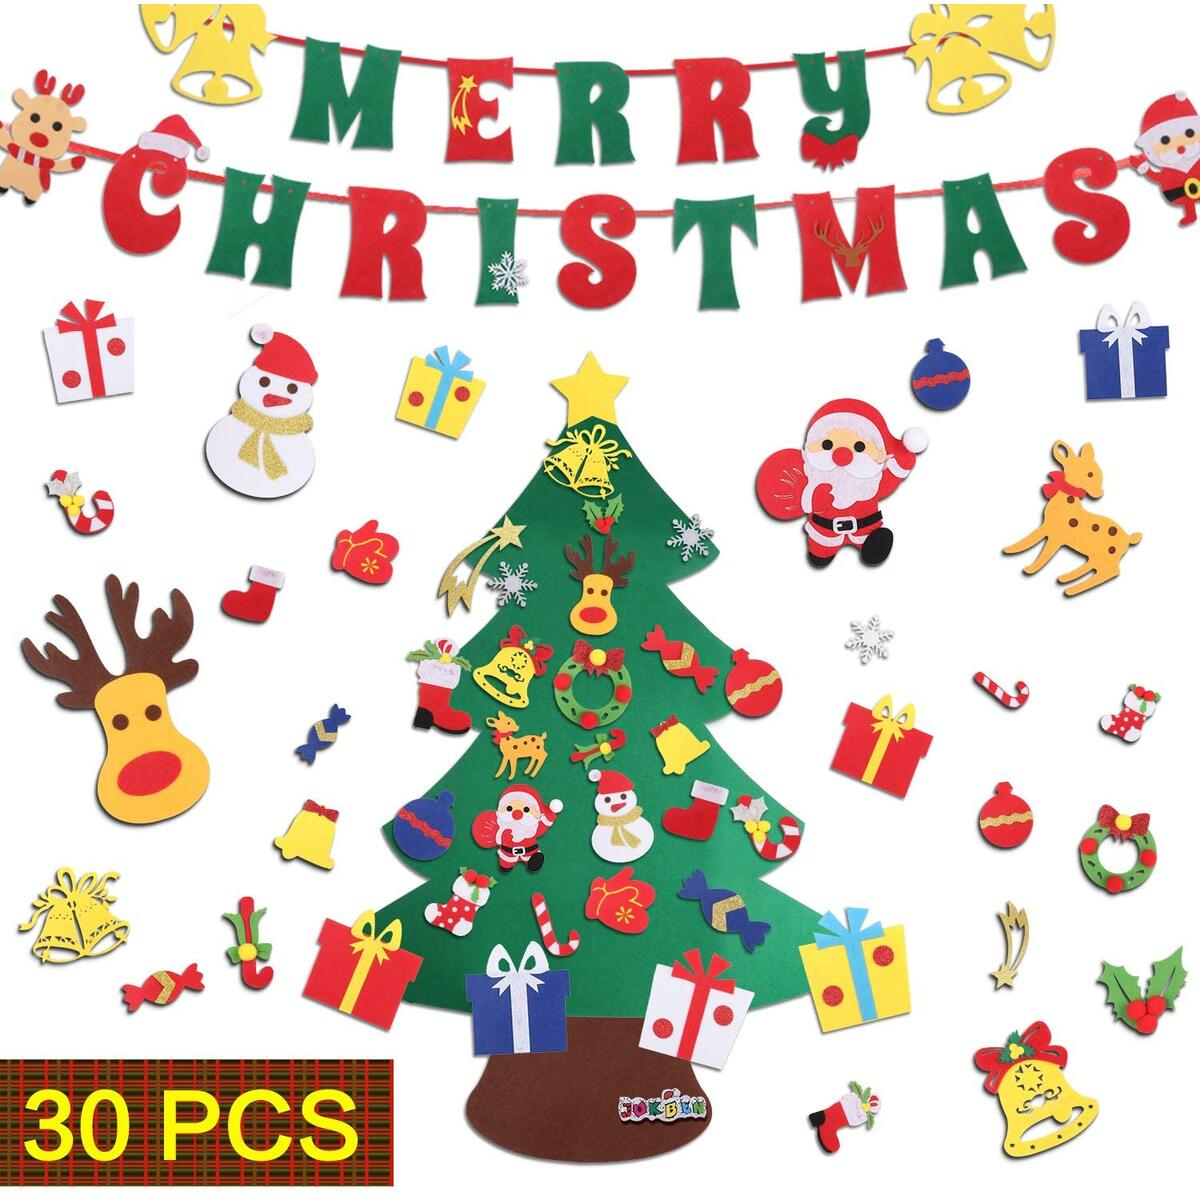 DIY Felt Christmas Tree Set, with Merry Christmas Felt Banner Wall Hanging Christmas Decorations with 30pcs Detachable Ornaments Xmas Gifts for Child